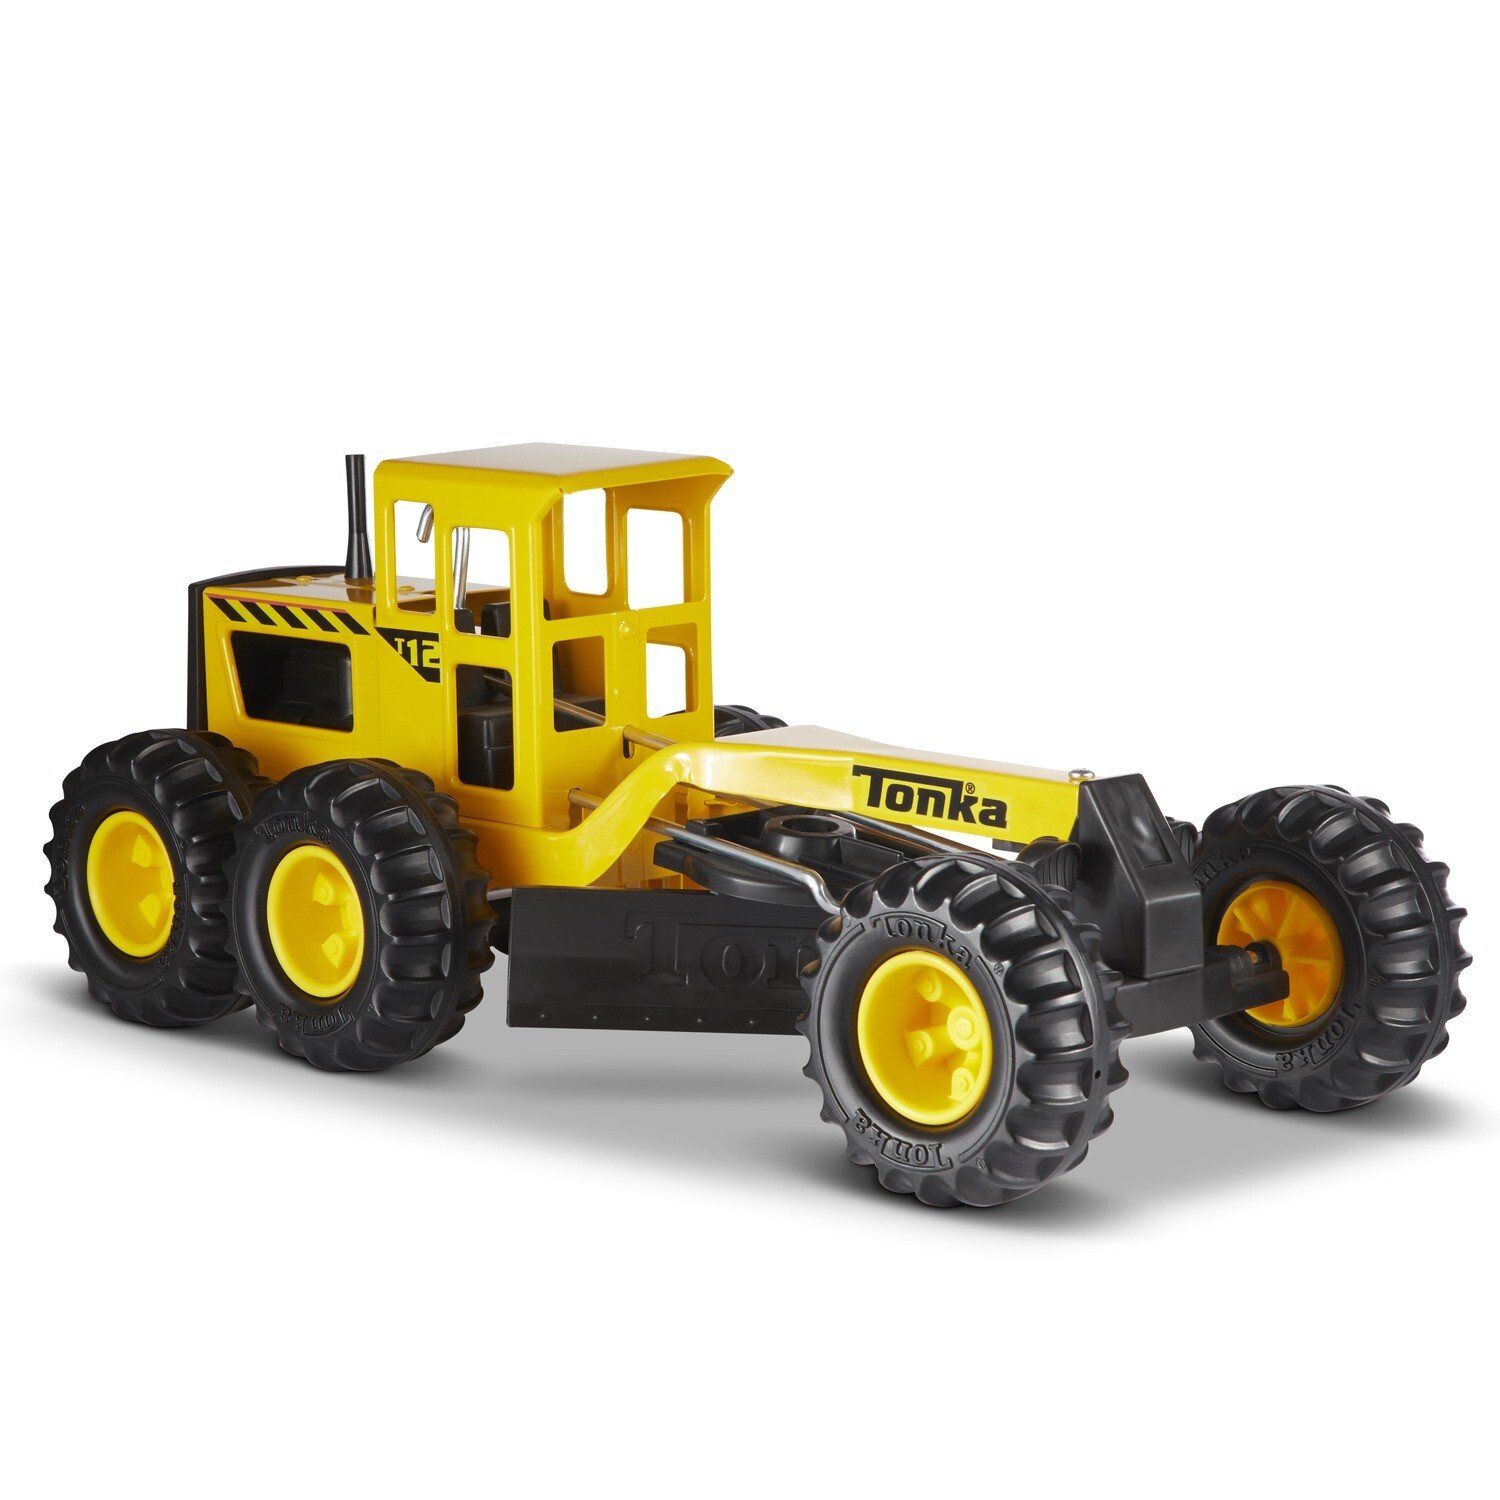 Funrise Toy Tonka Classic Steel Tough Grader (Collector's Item)